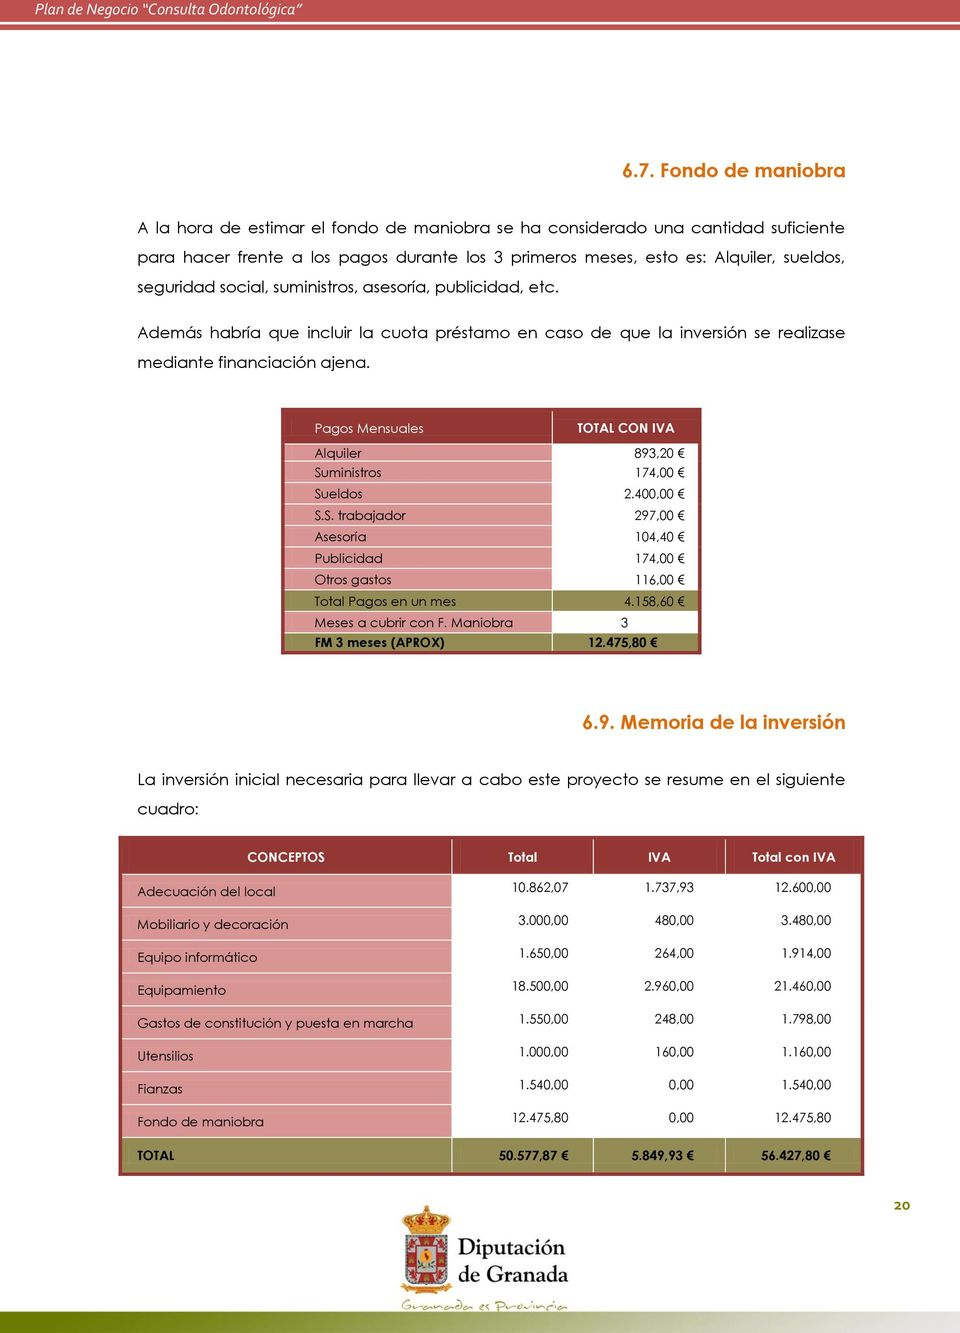 Pags Mensuales TOTAL CON IVA Alquiler 893,20 Suministrs 174,00 Suelds 2.400,00 S.S. trabajadr 297,00 Asesría 104,40 Publicidad 174,00 Otrs gasts 116,00 Ttal Pags en un mes 4.